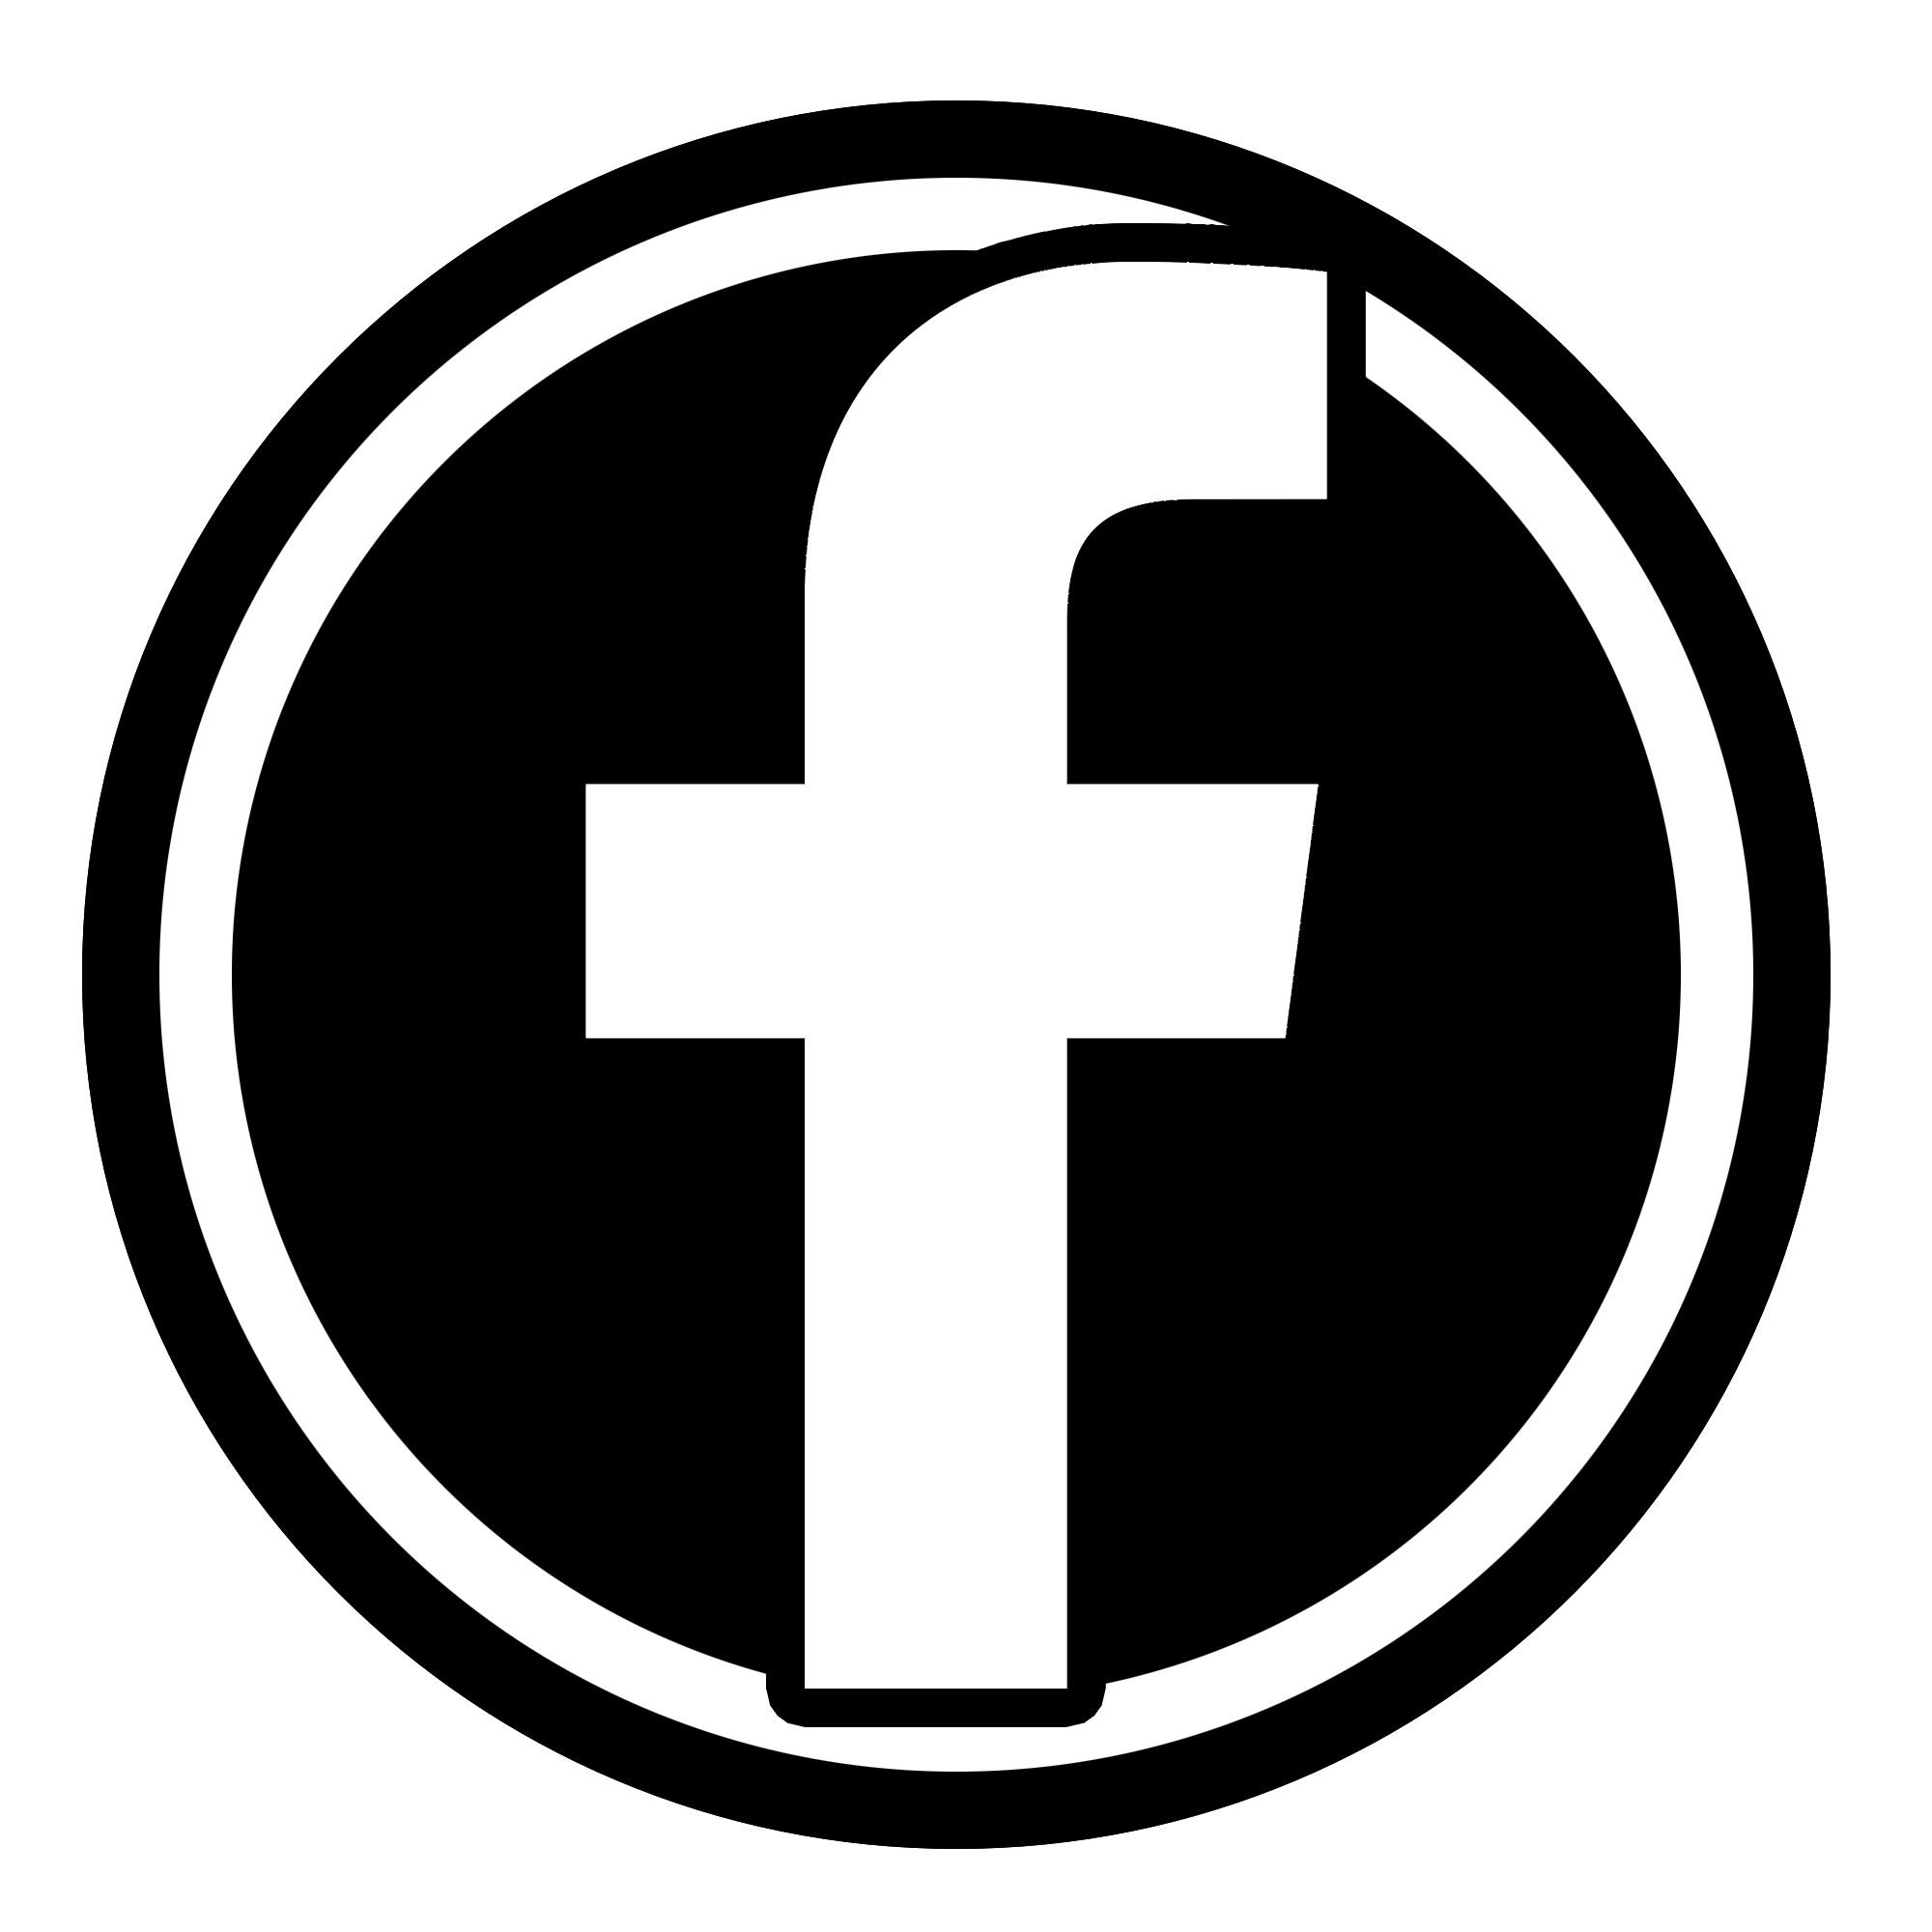 Images For > Facebook Icon Png image #768